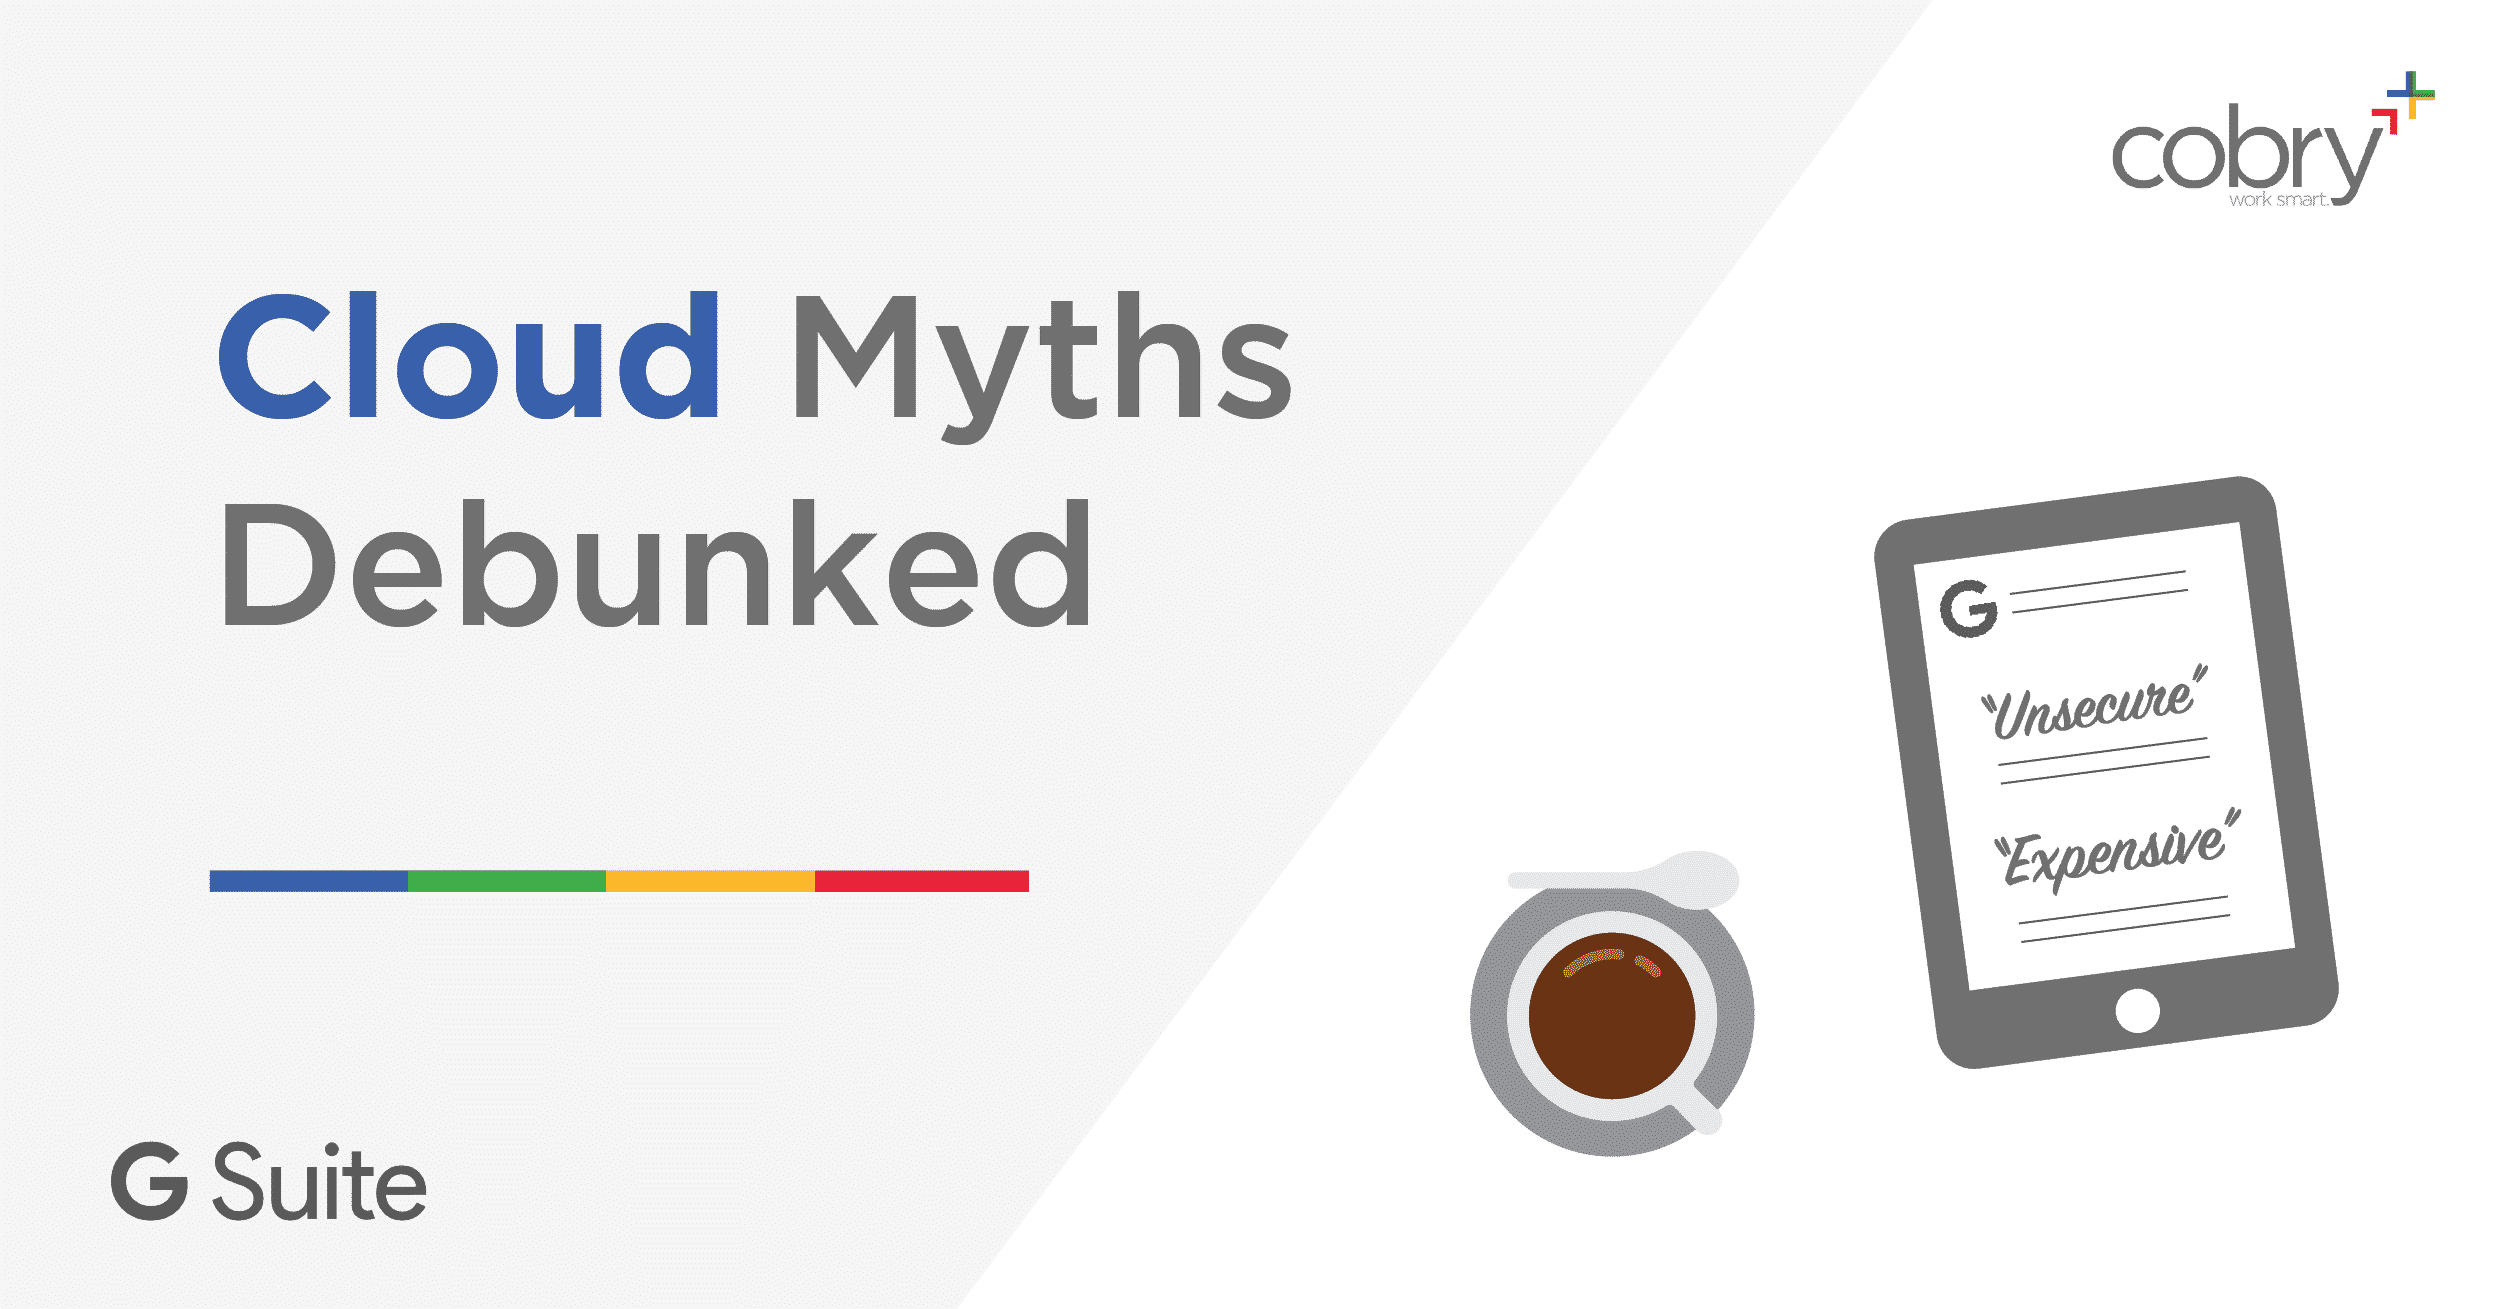 Cloud Myths